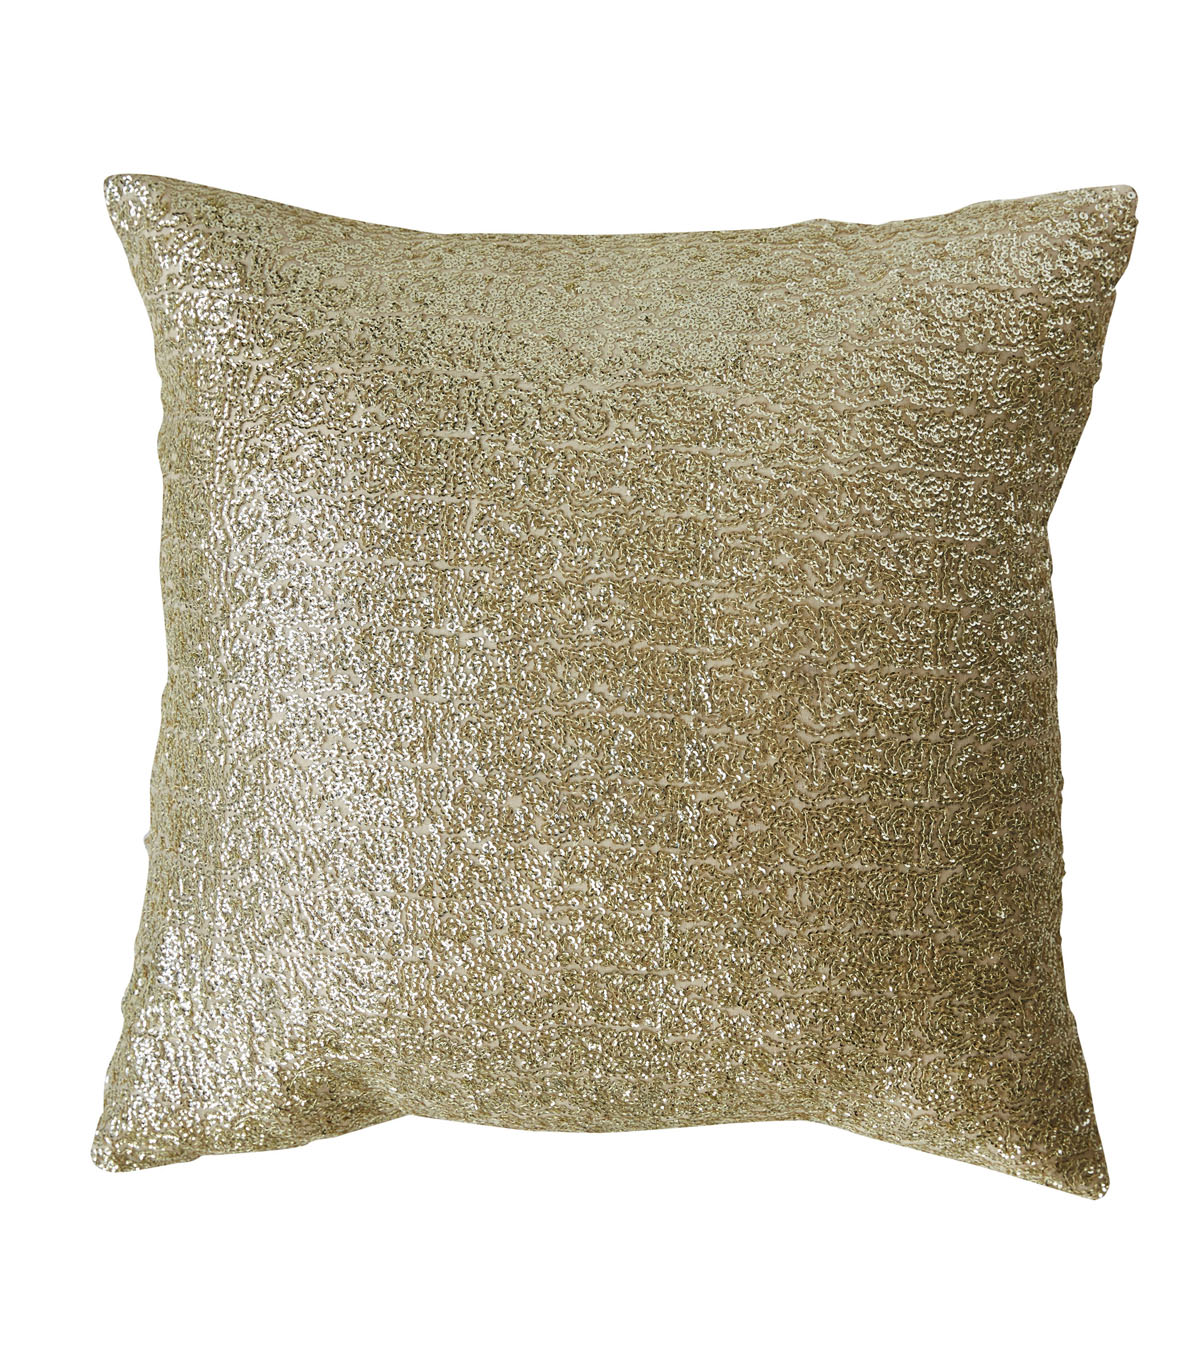 3R Studios Christmas Square Fabric Sequined Pillow-Gold